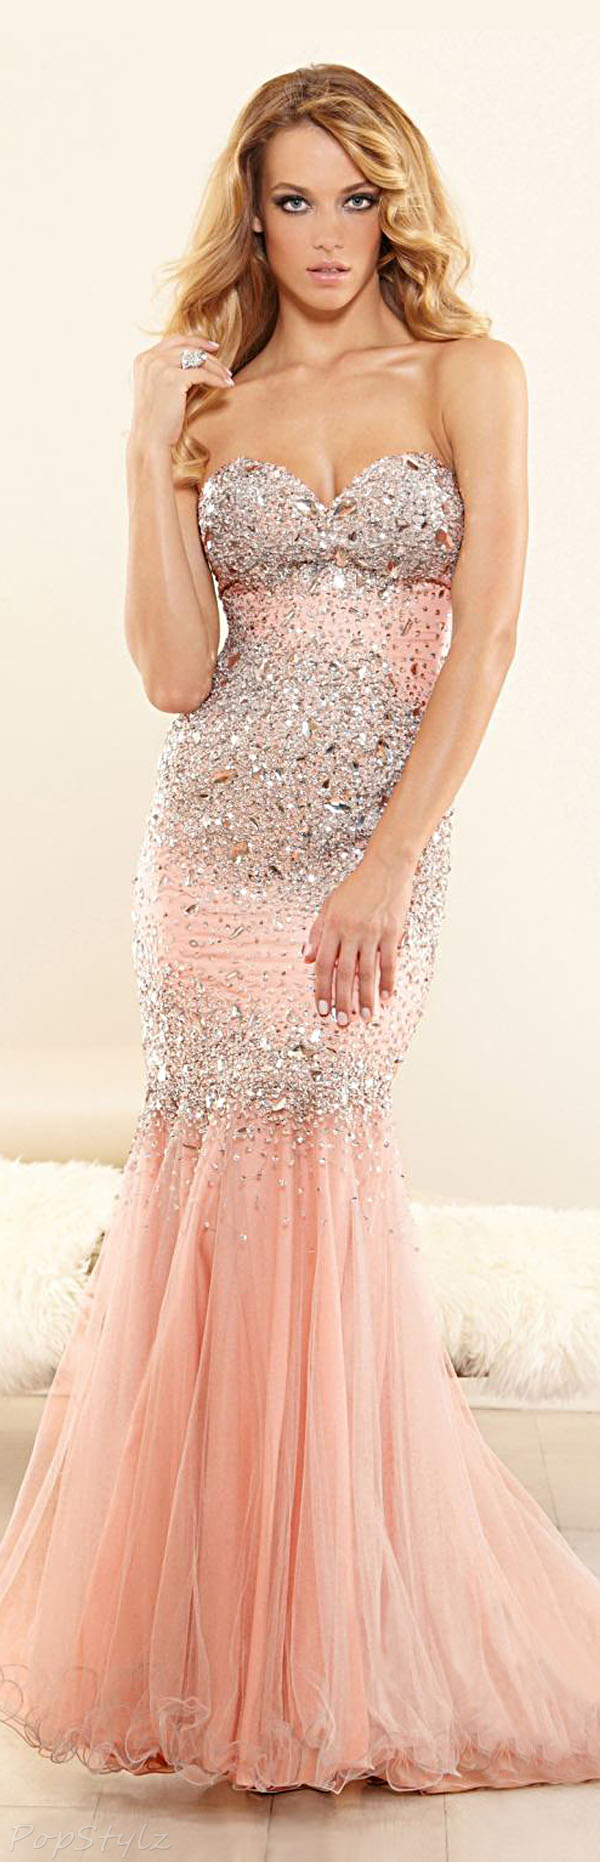 Terani Couture P3123 Evening Gown